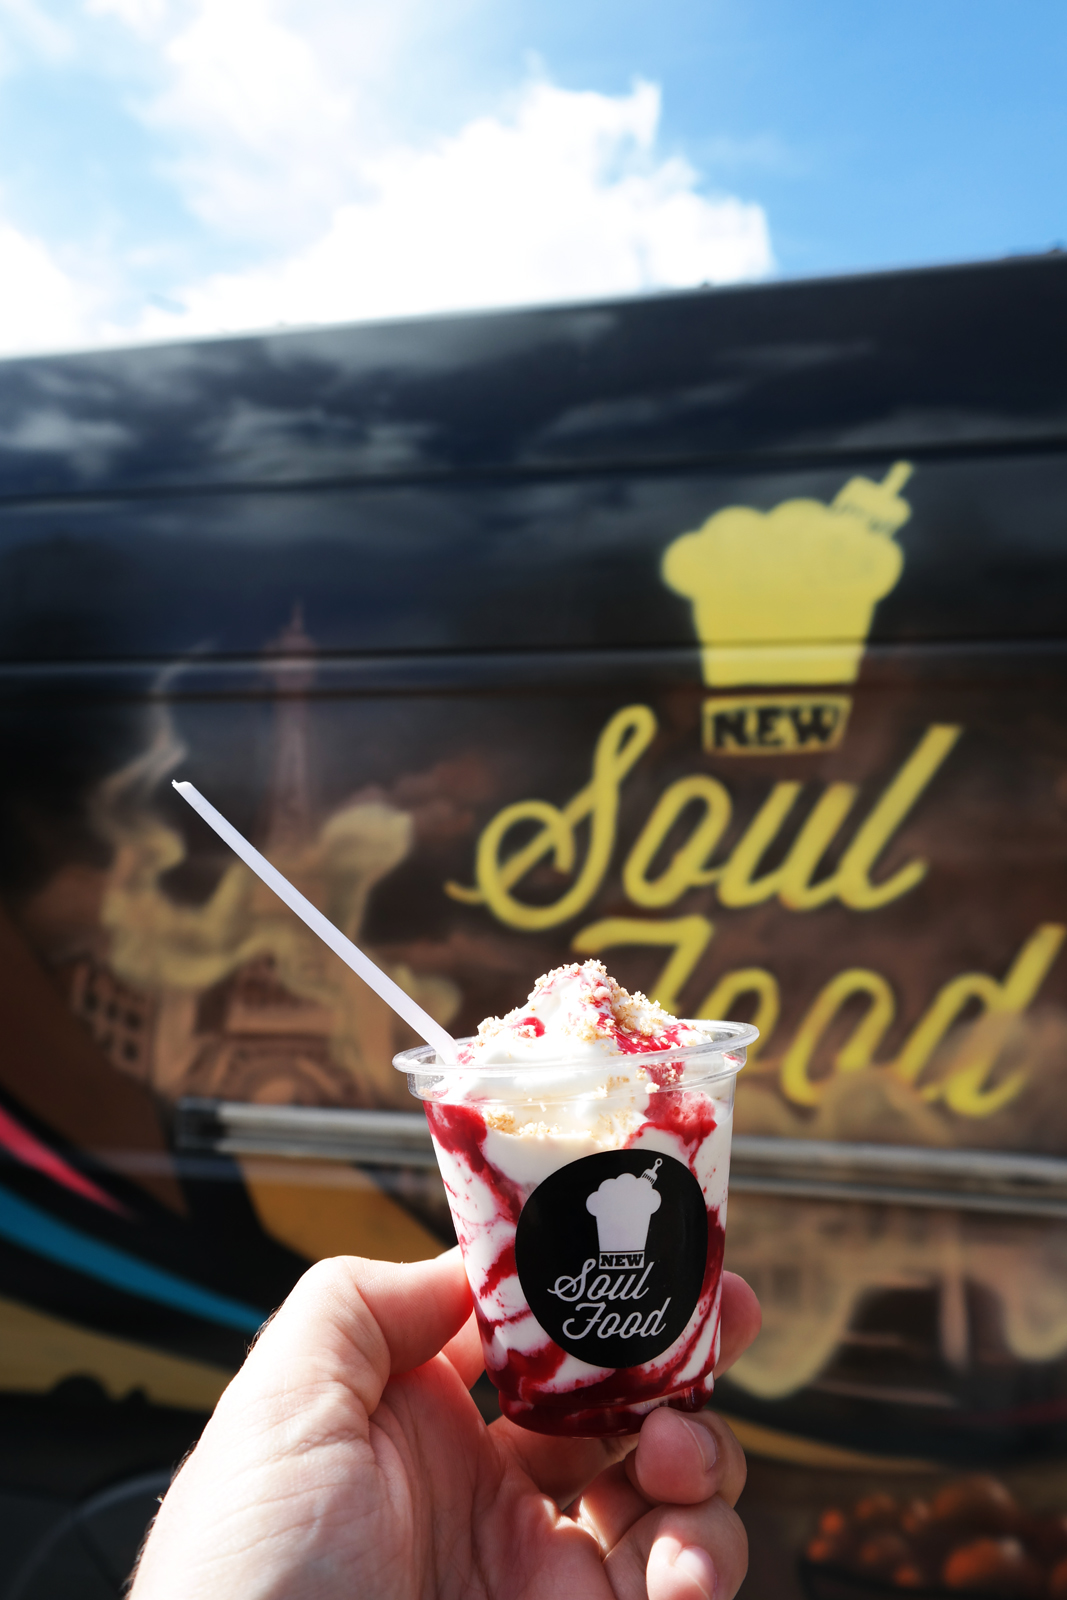 New Soul Food truck by Rudy Laine glace artisanale coco vervaine et coulis exotique en dessert photo united states of paris blog